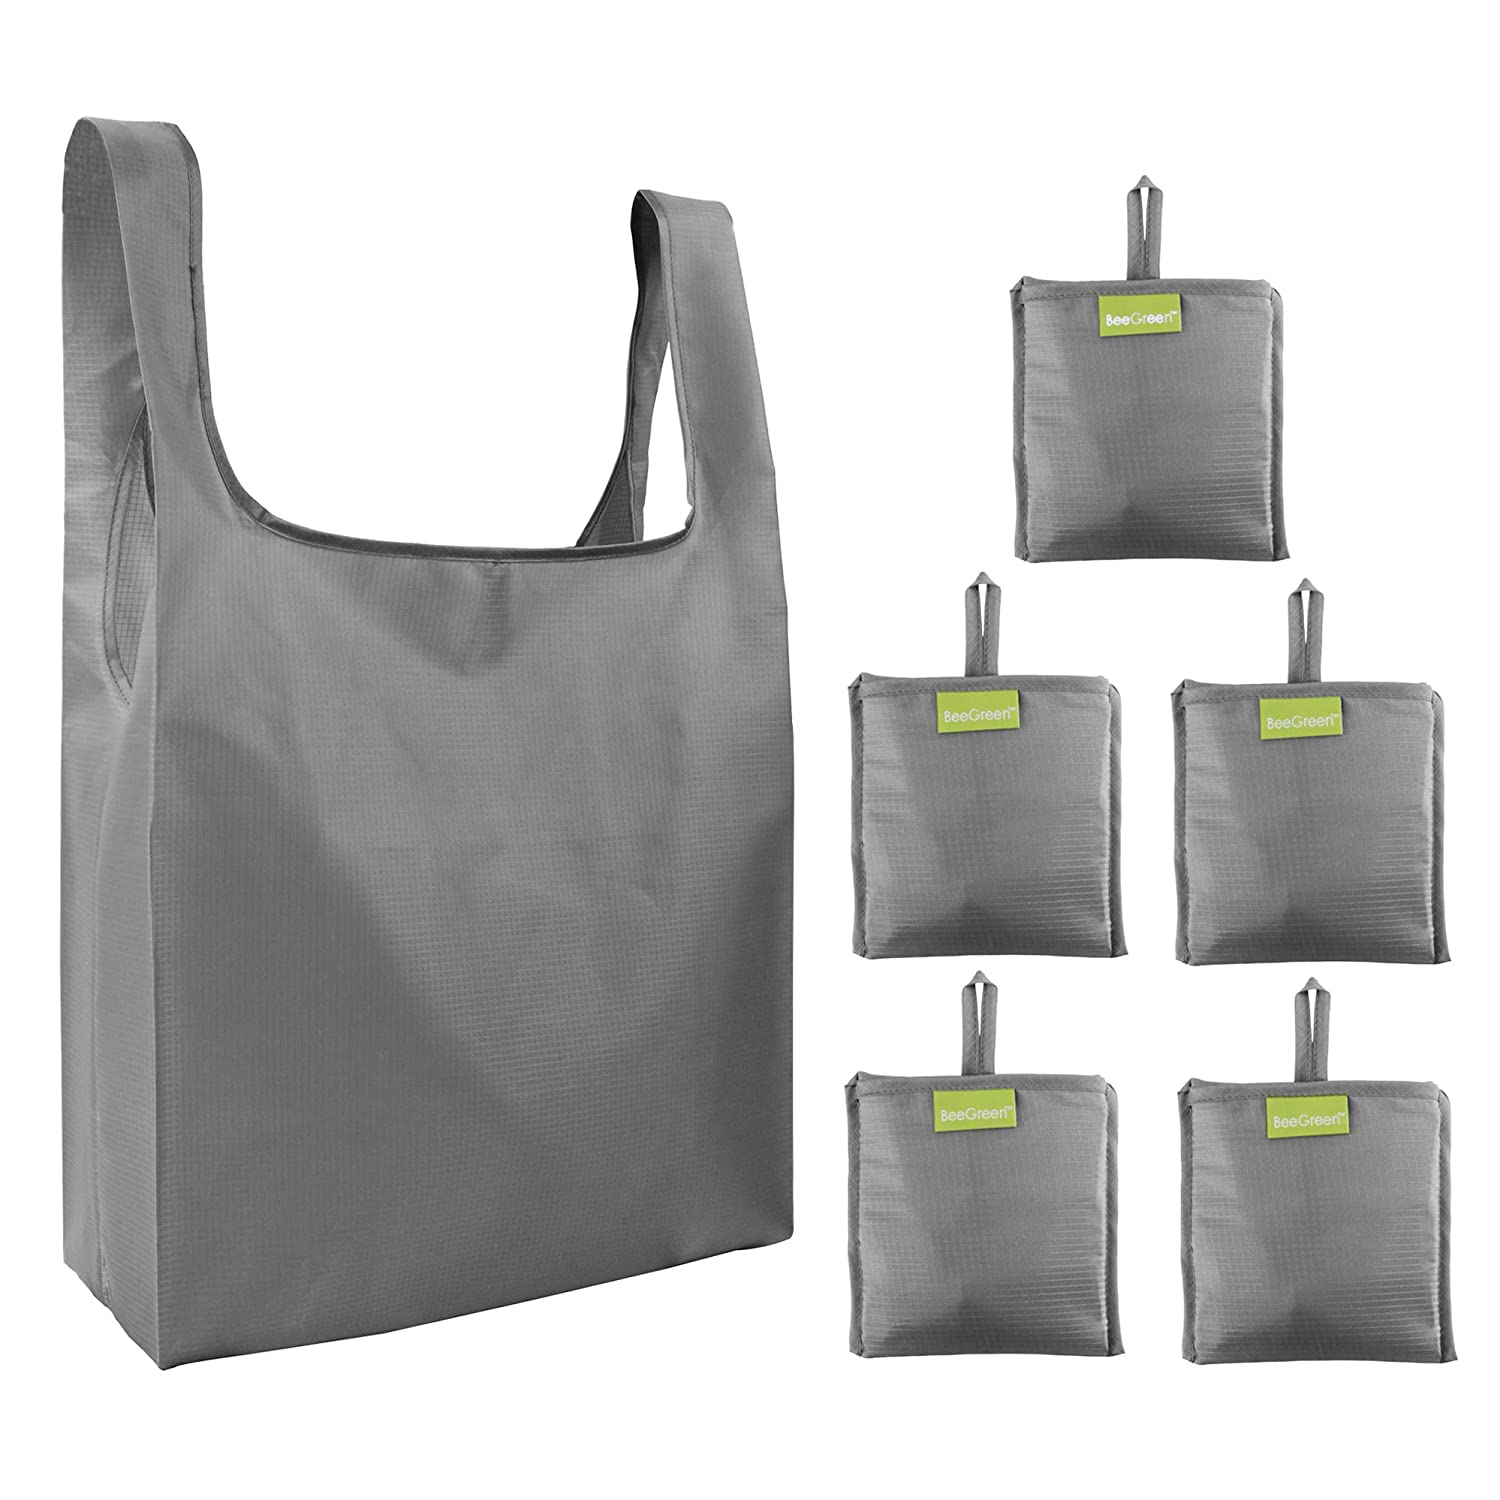 d2b02d0427f5 Folding-Reusable-Grocery-Bags-Shopping-bag with Pocket Folded Groceries  Compact Bags for Shopper Gifts Travel Washable Bulk